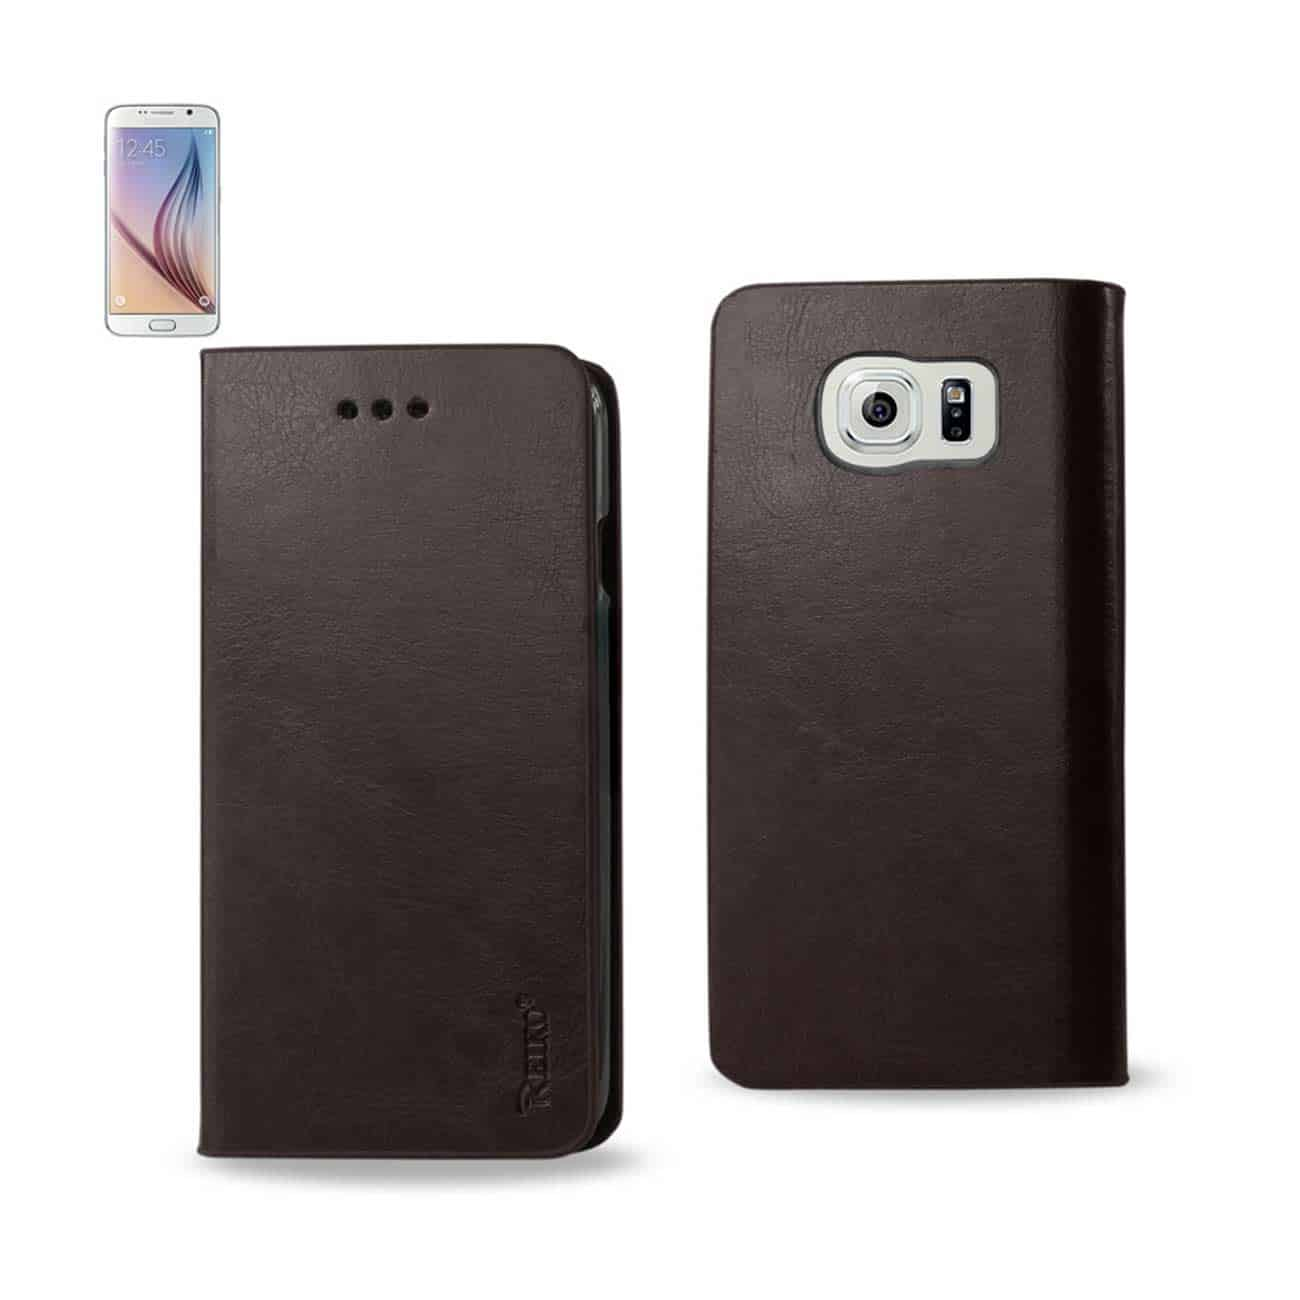 SAMSUNG GALAXY S6 FLIP FOLIO CASE WITH CARD HOLDER IN BROWN